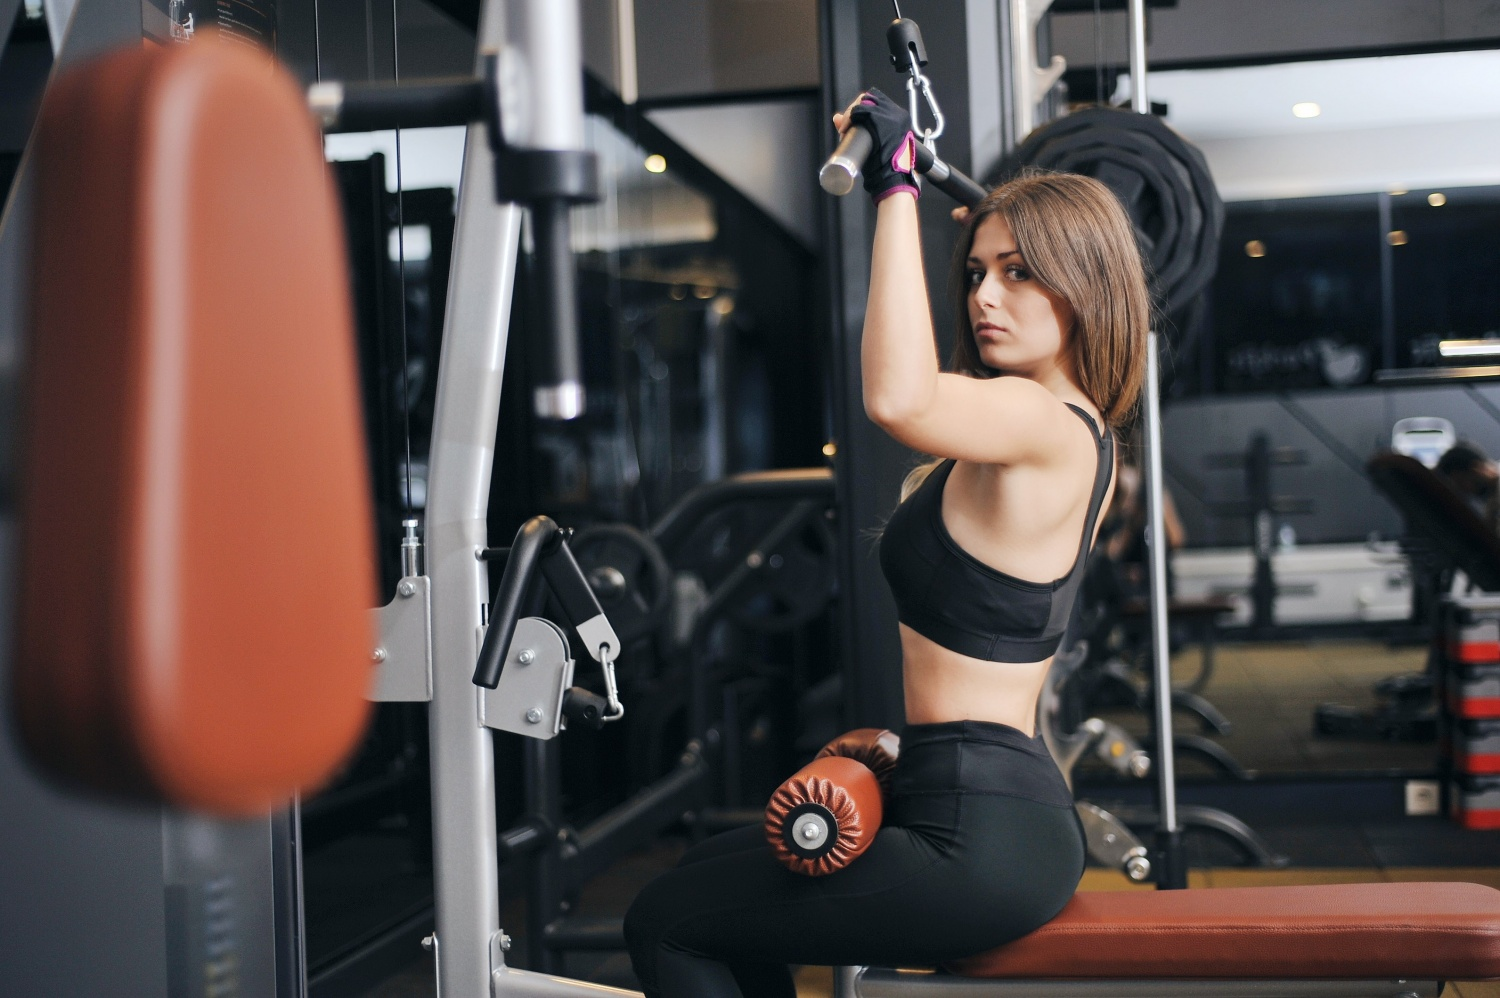 How to Stay Fit Amid COVID-19: Online Gym Apps Offer Free Workout ...